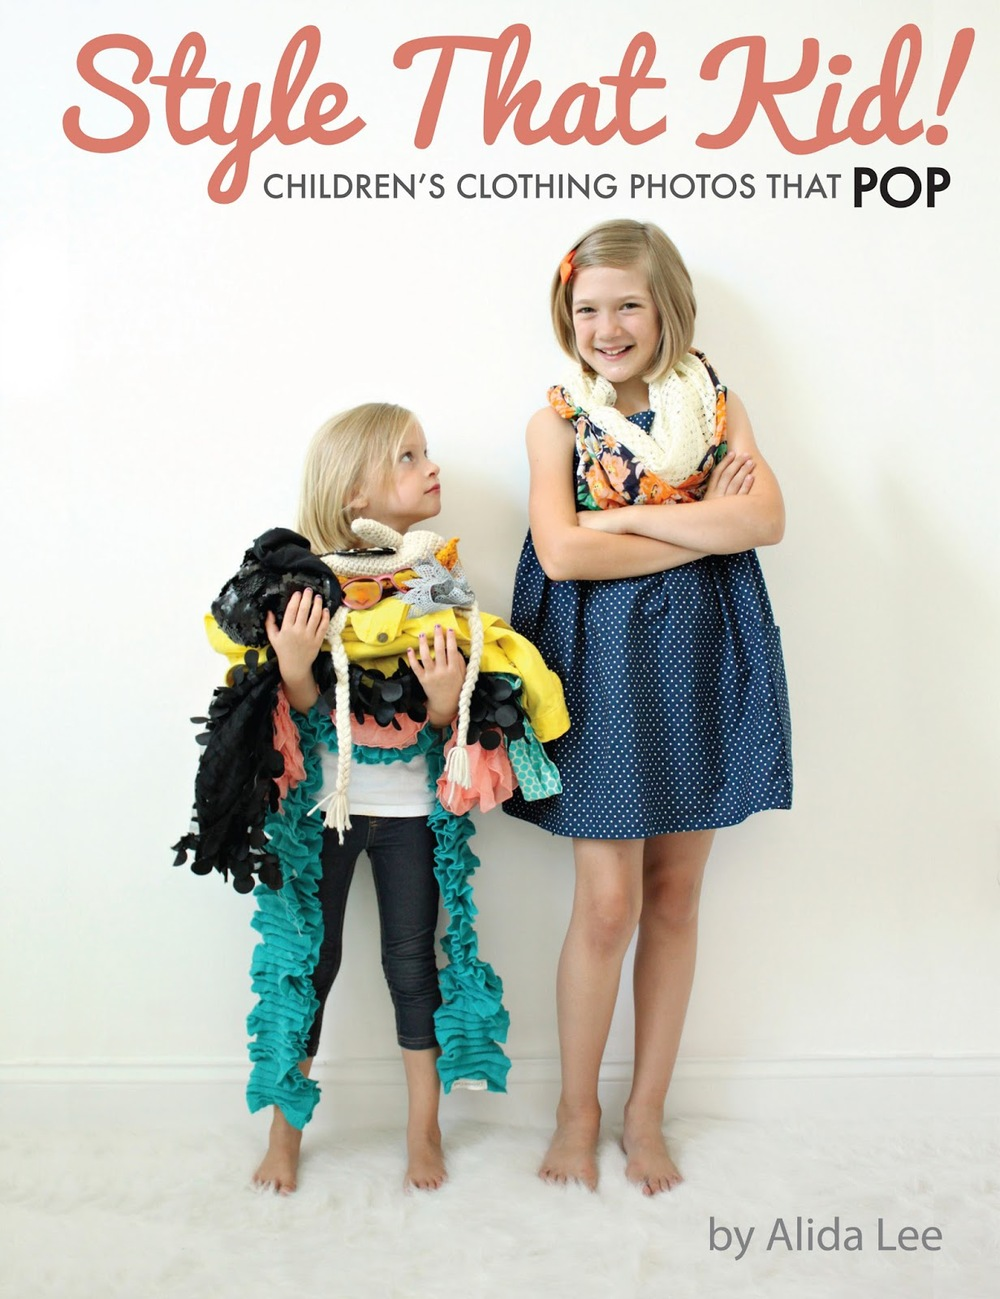 Style that Kid: Children's Clothing Photos that Pop by Alida Lee || VeryShannon.com